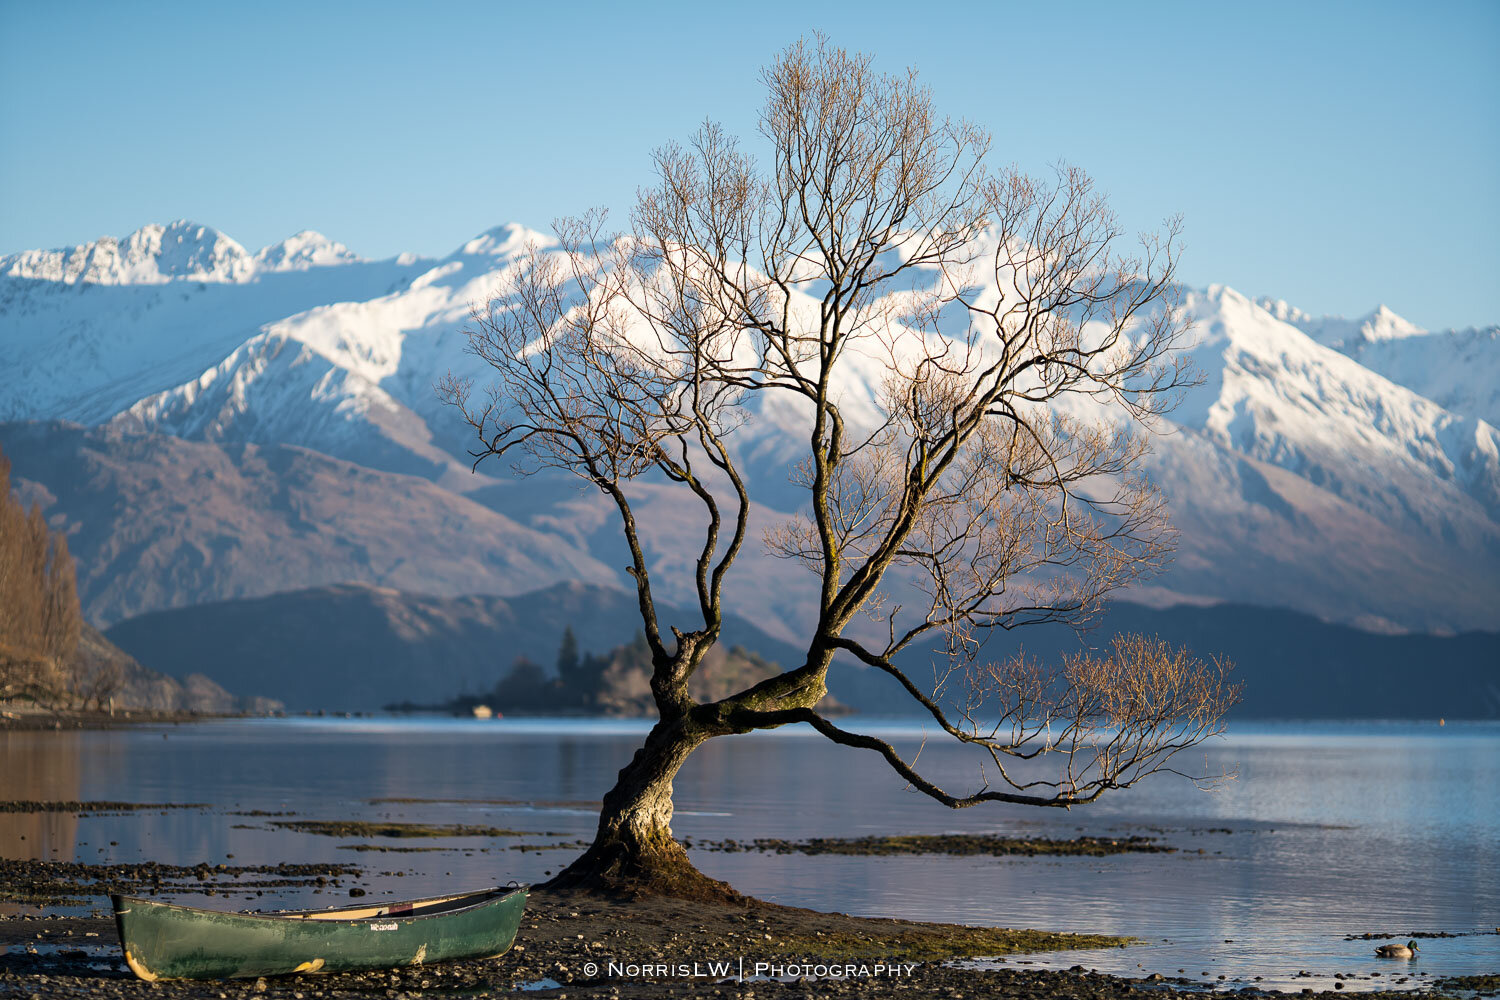 Wanaka_South_Island_NZ-20190907-023.jpg